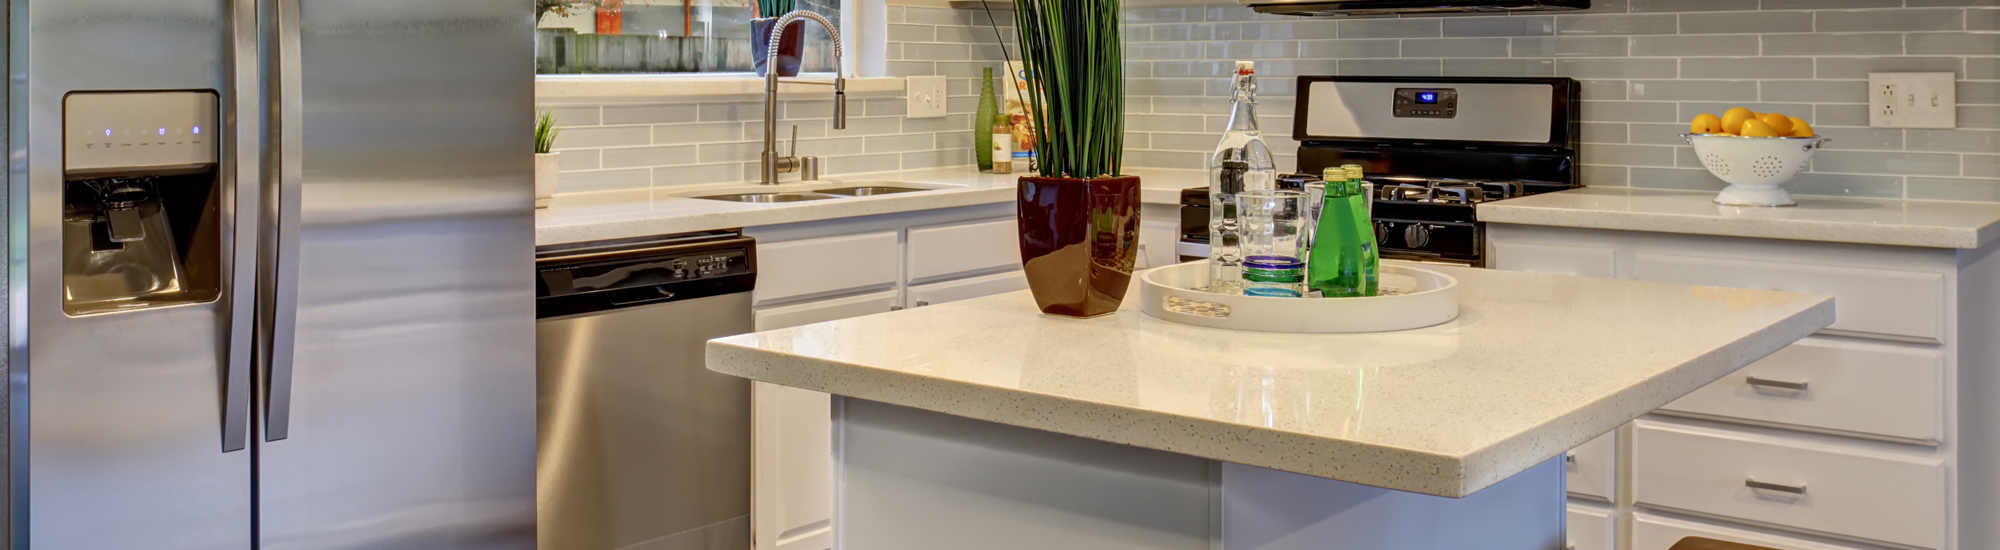 Wholesale granite countertops st louis mo granite counters for Cheap kitchen cabinets st louis